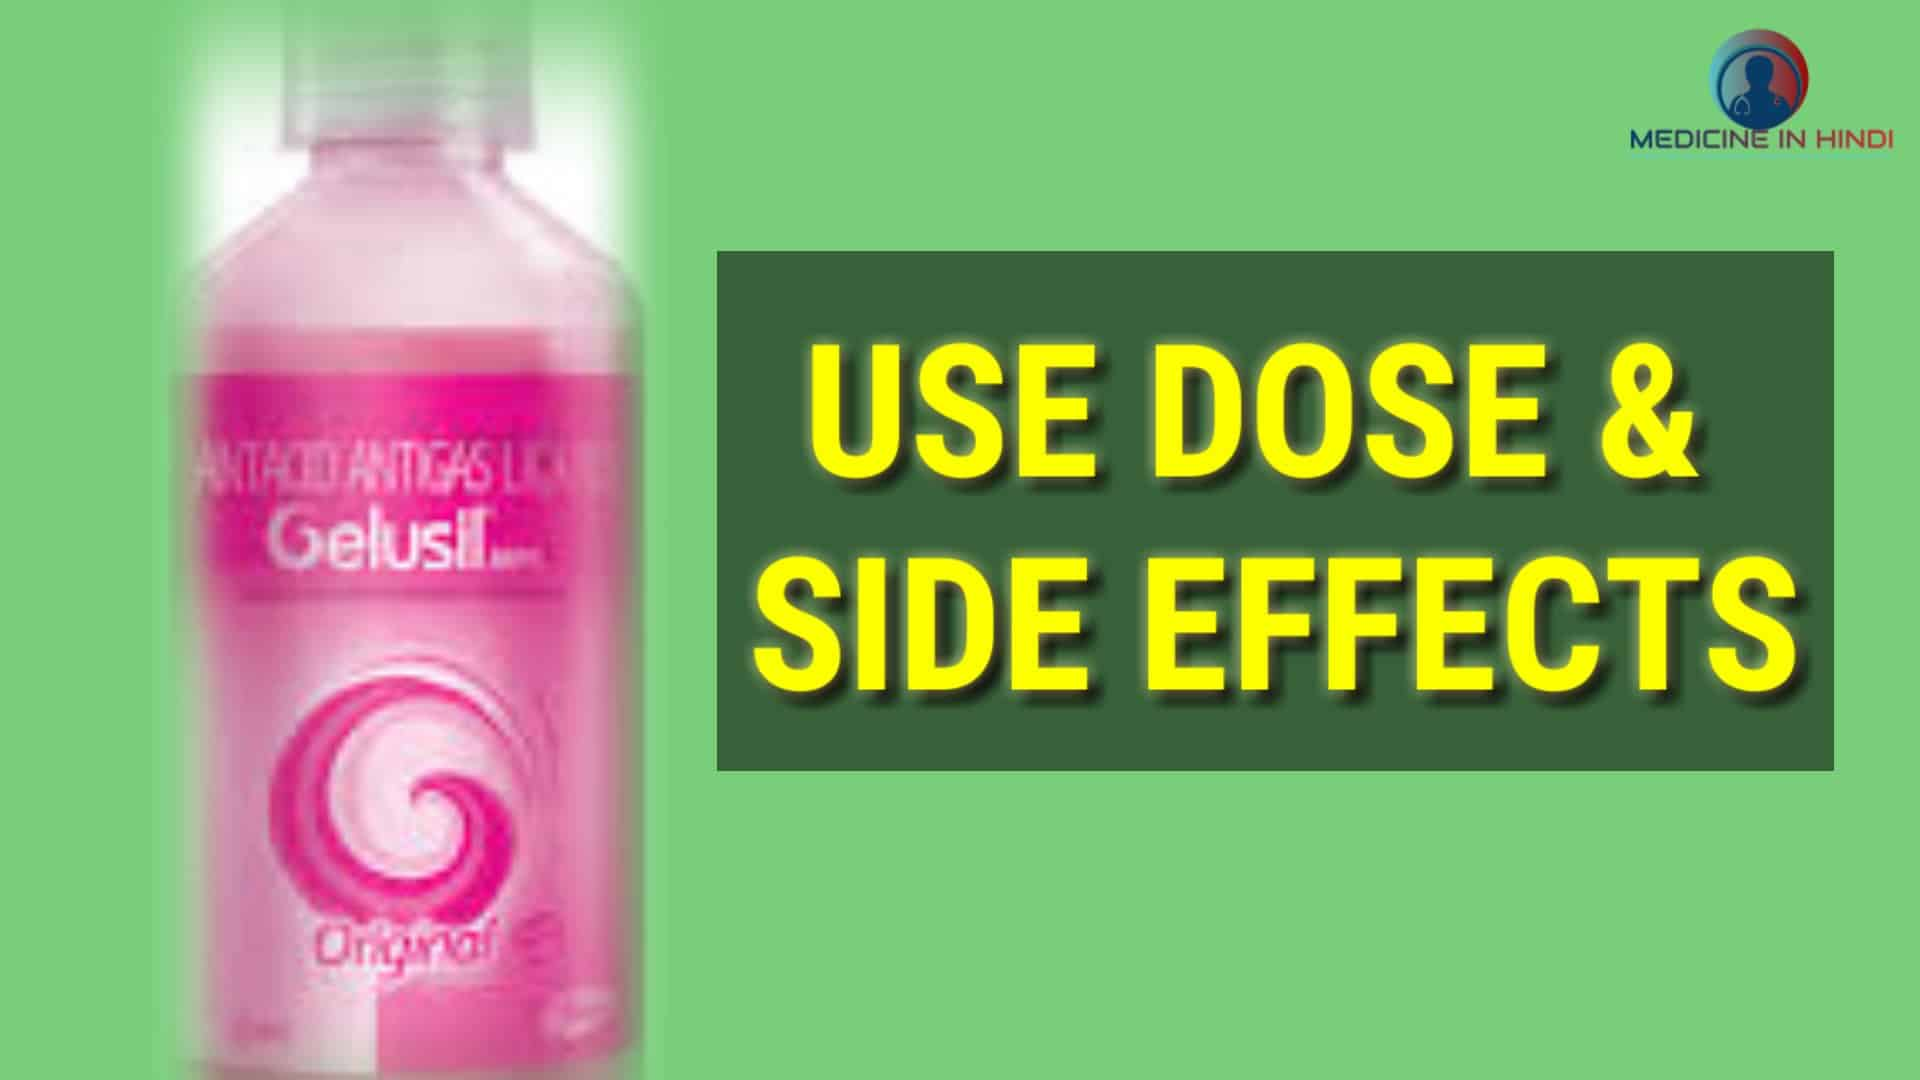 Gelusil Antacid Tablets in Hindi | Gelusil Tablets Use Dose in Hindi |